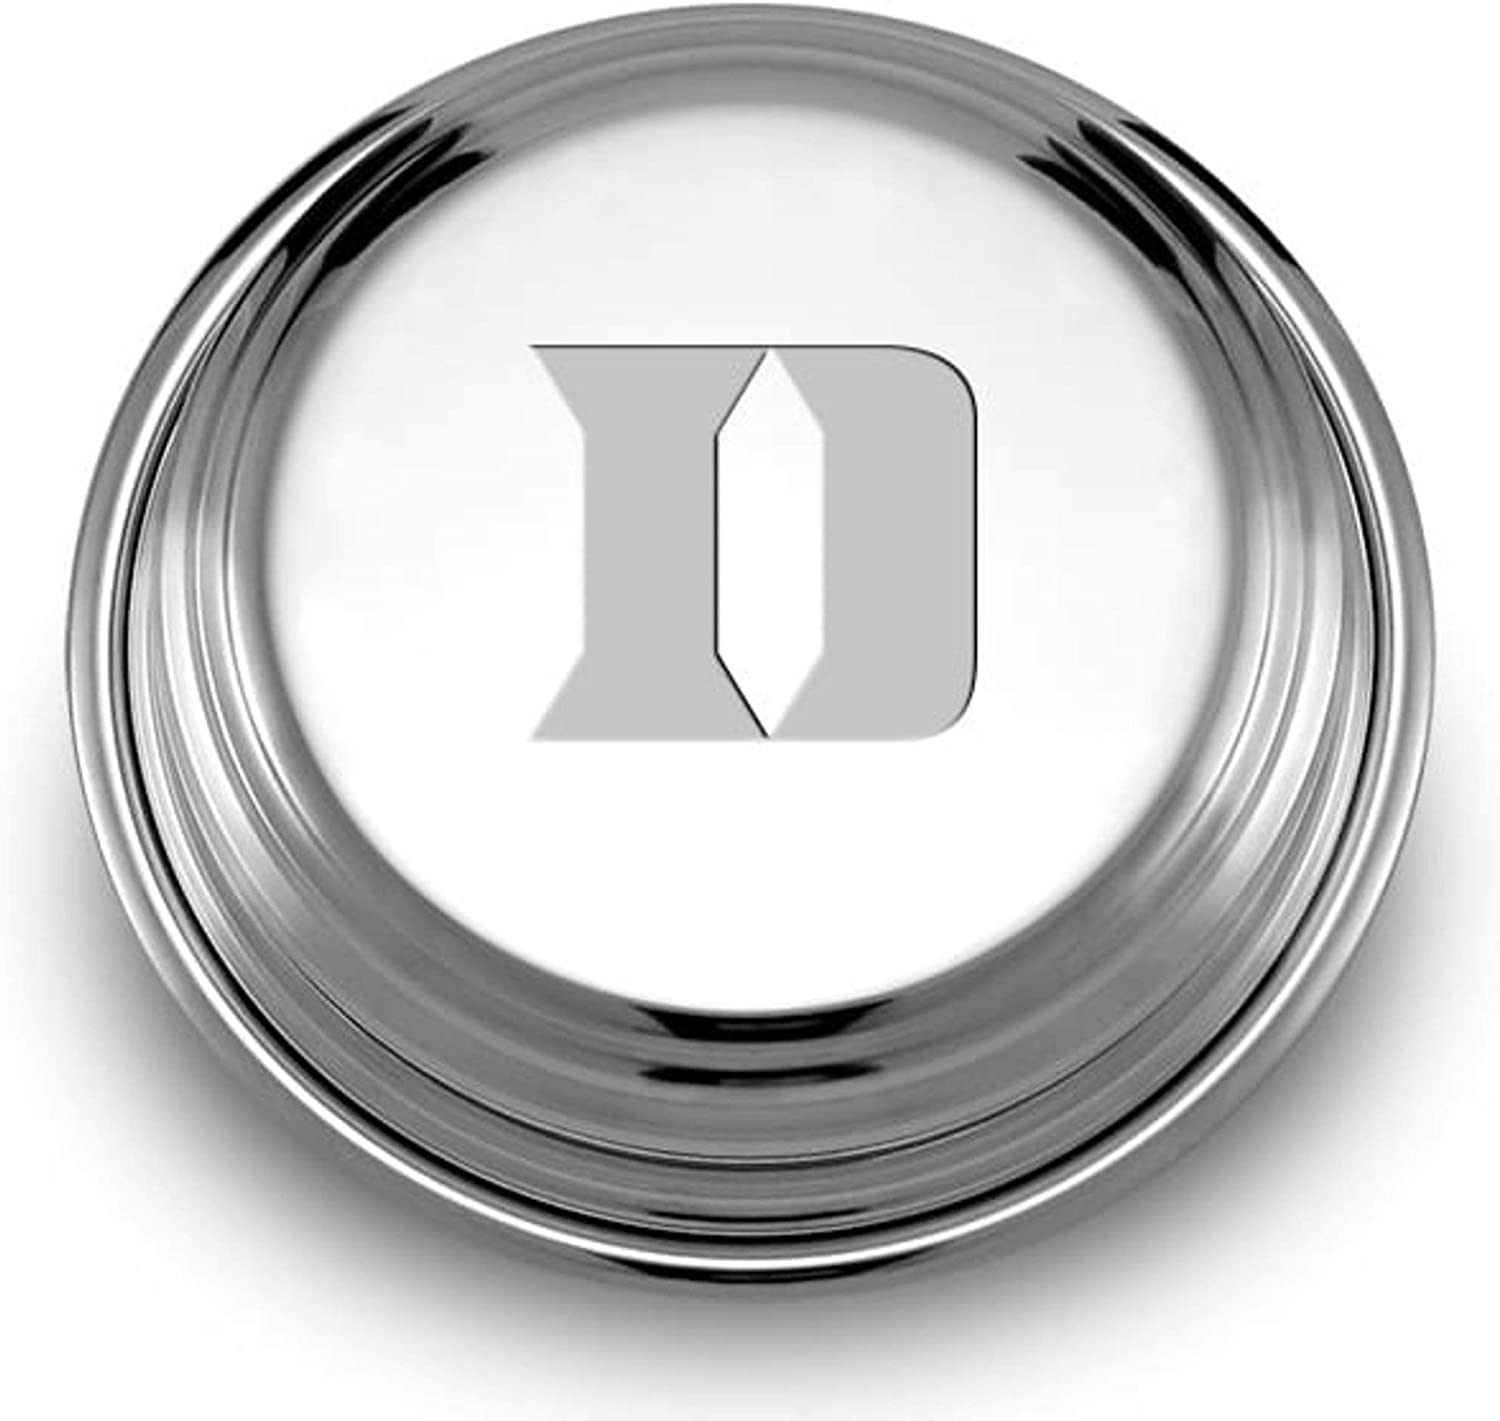 M LA HART NCAA Unisex-Adult Pewter Desk Accessories